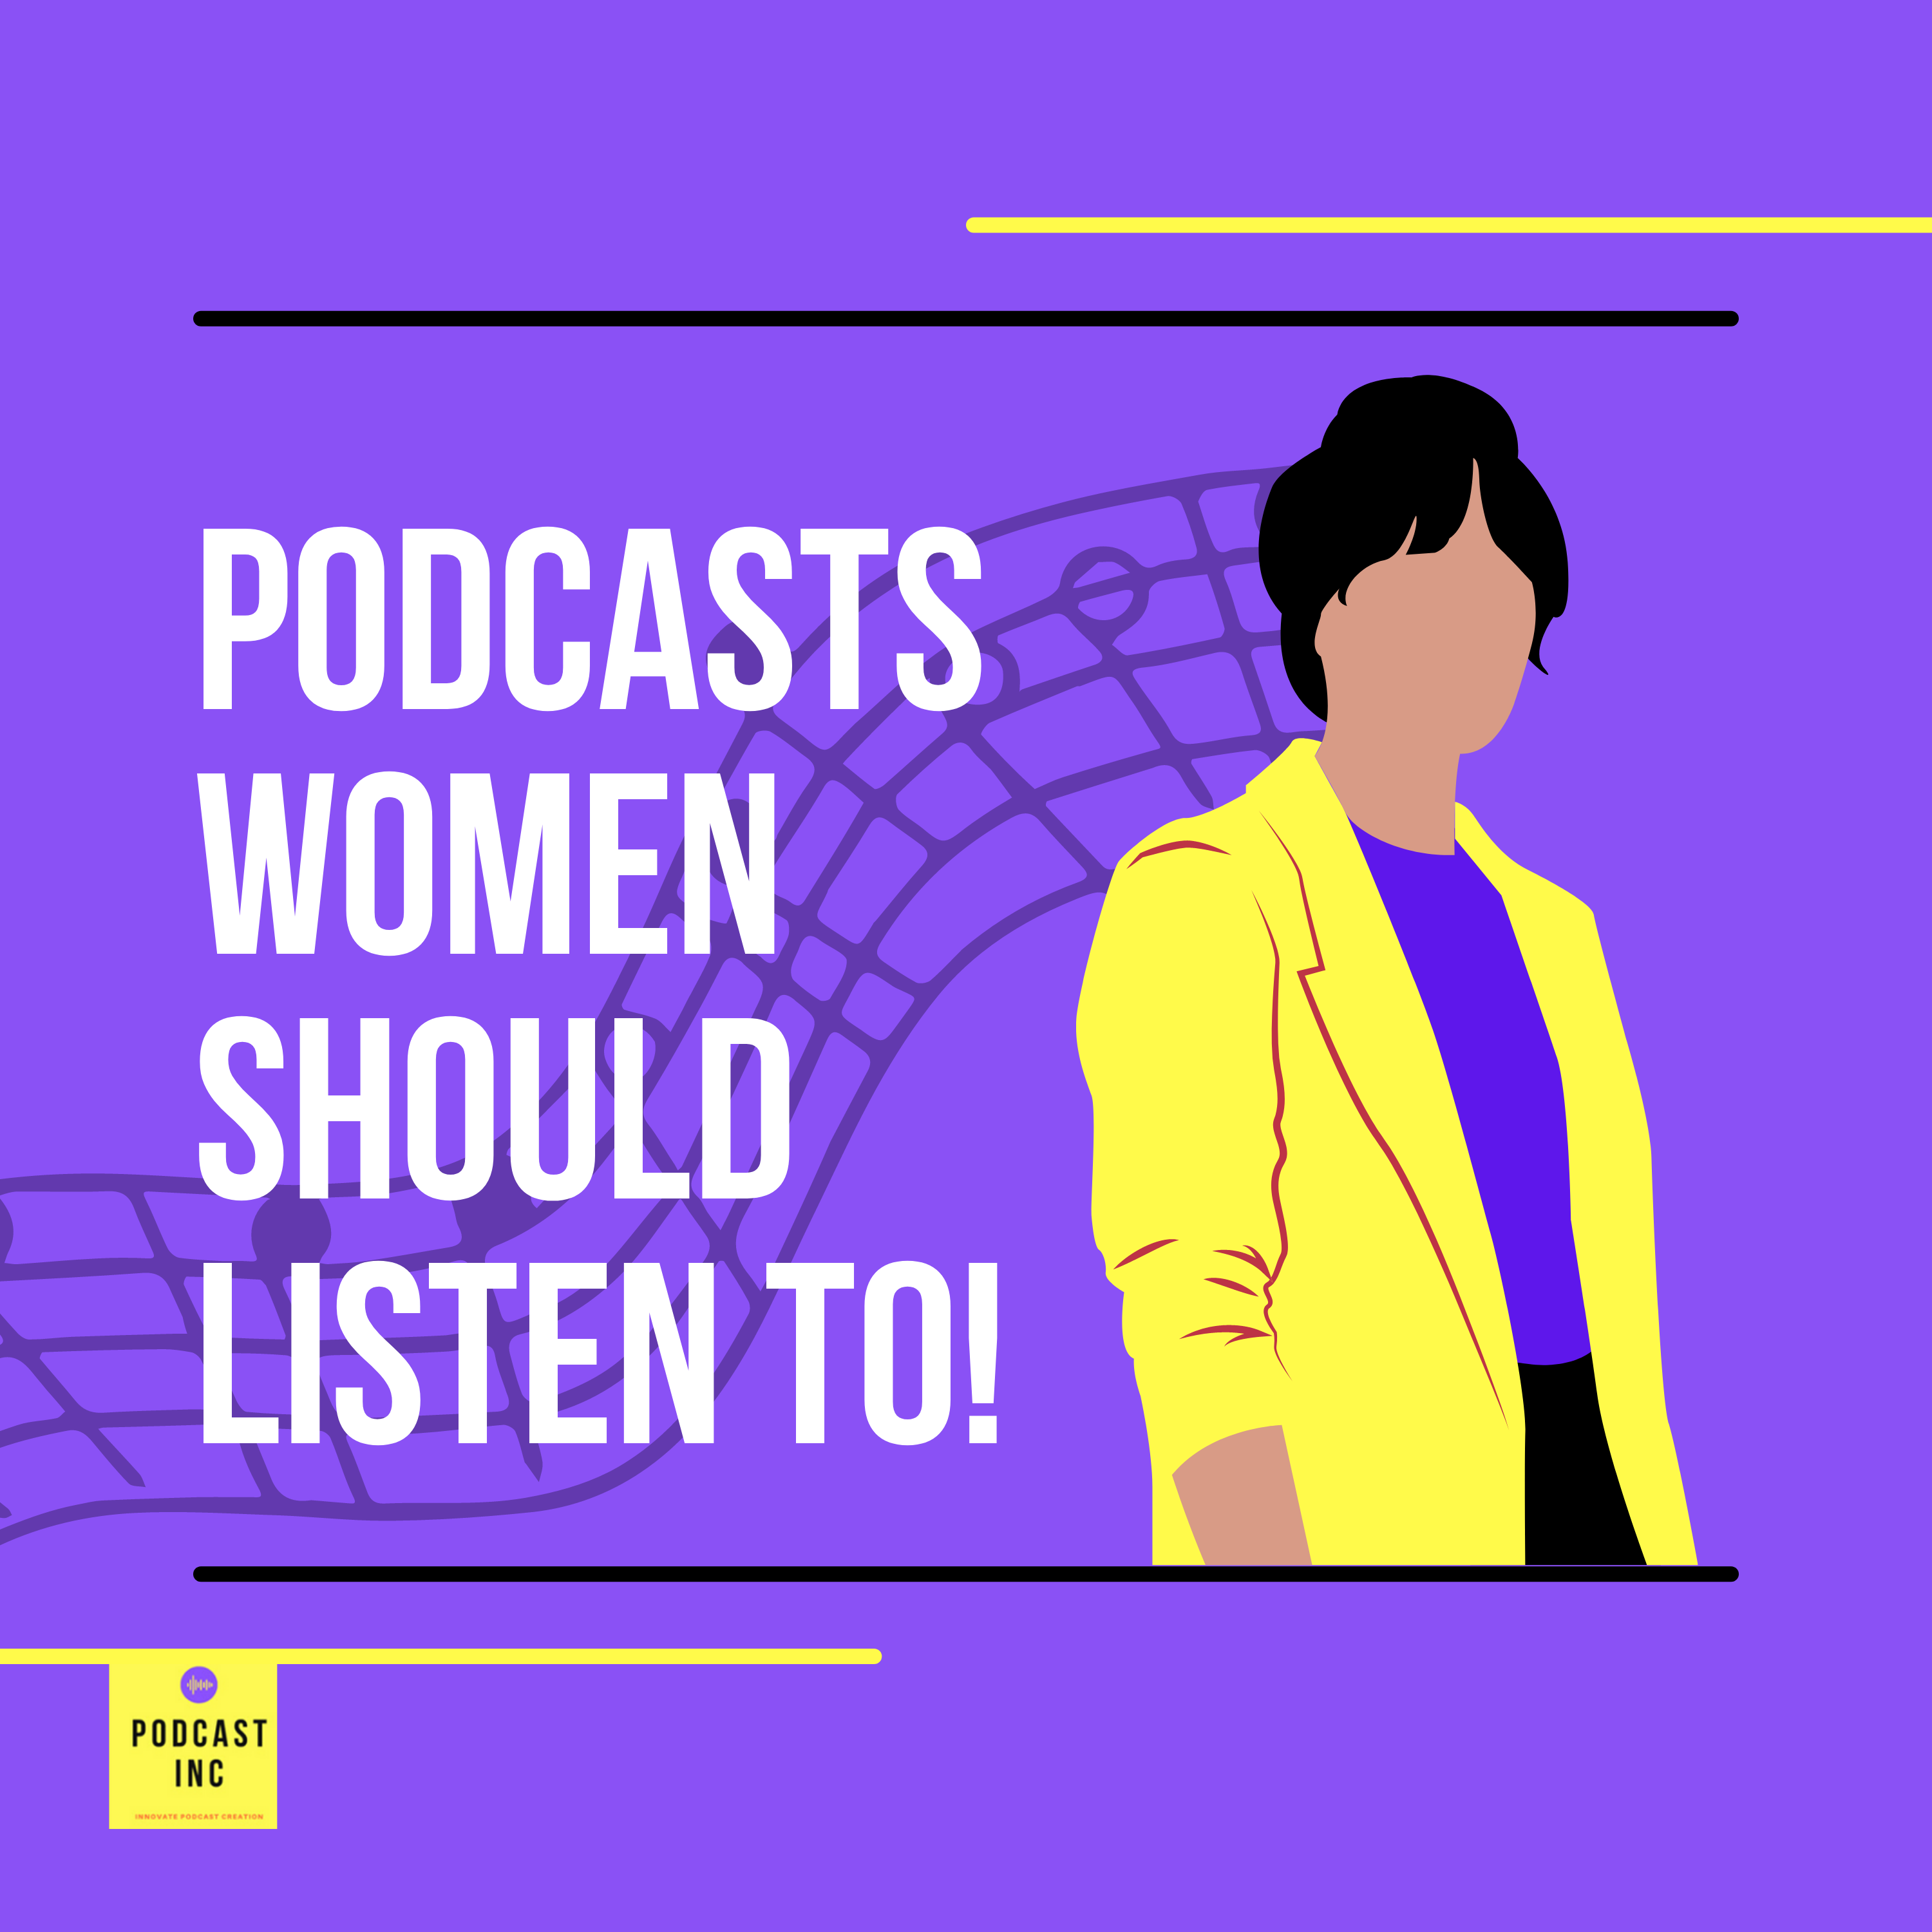 Podcasts Women should listen to